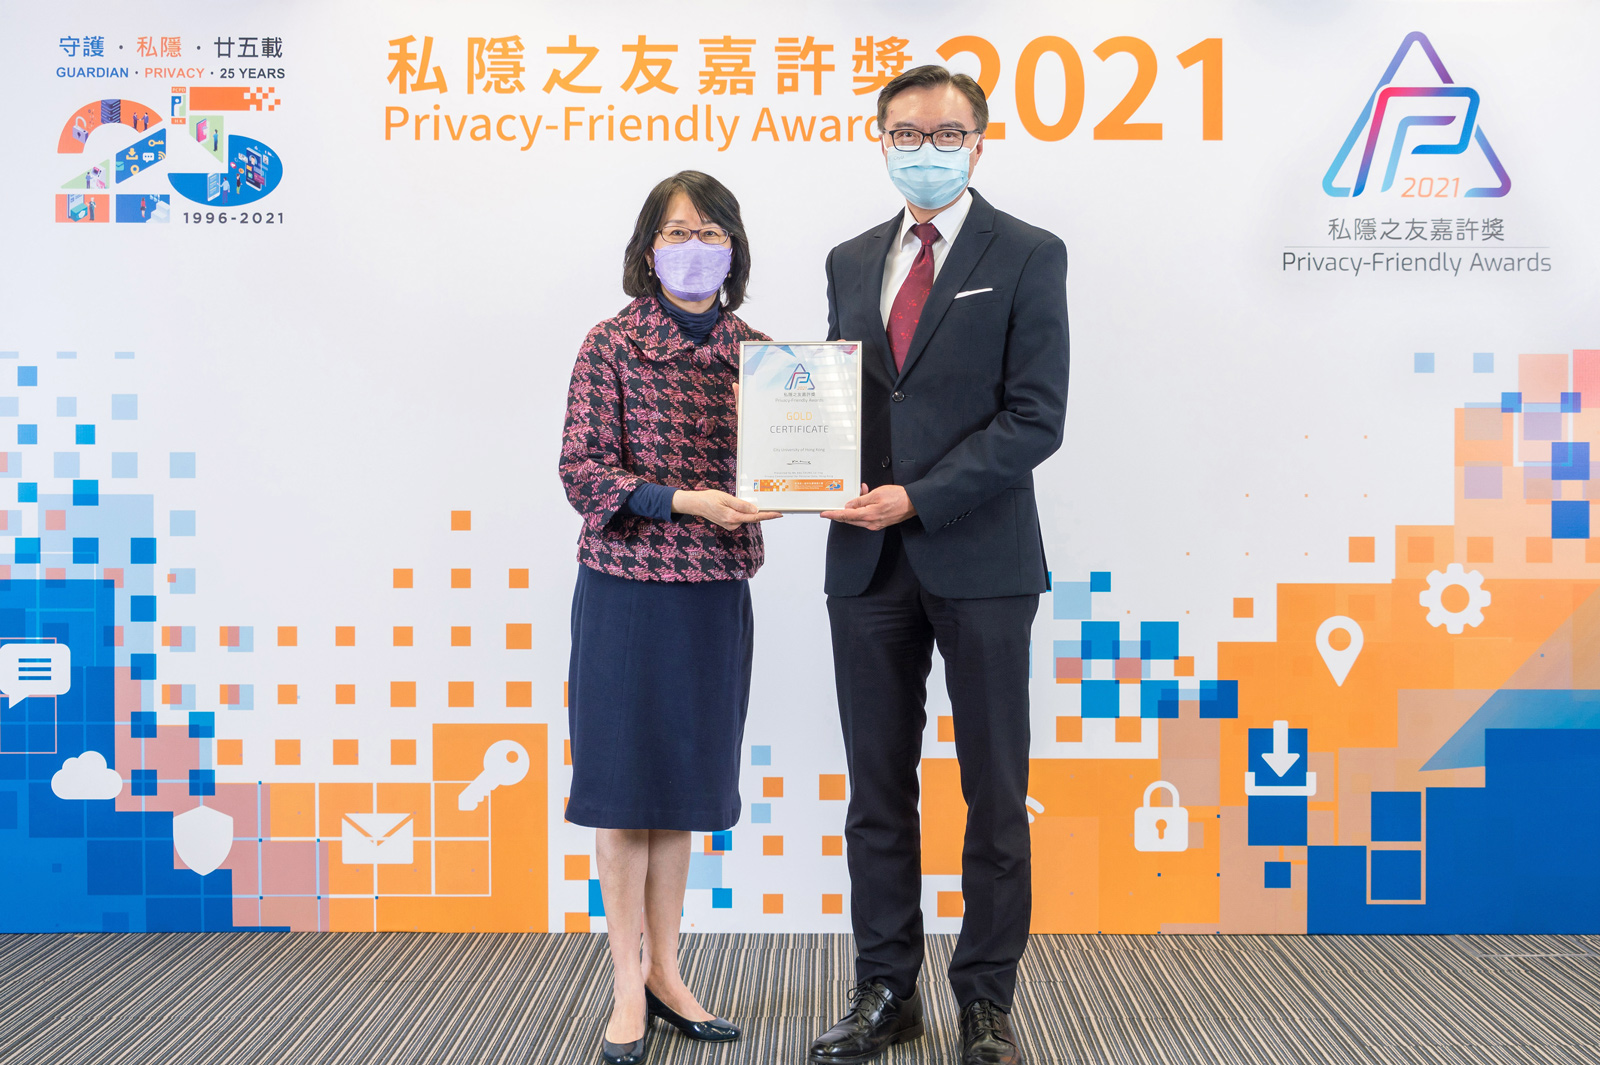 Gold Certificate of Privacy-Friendly Awards 2021